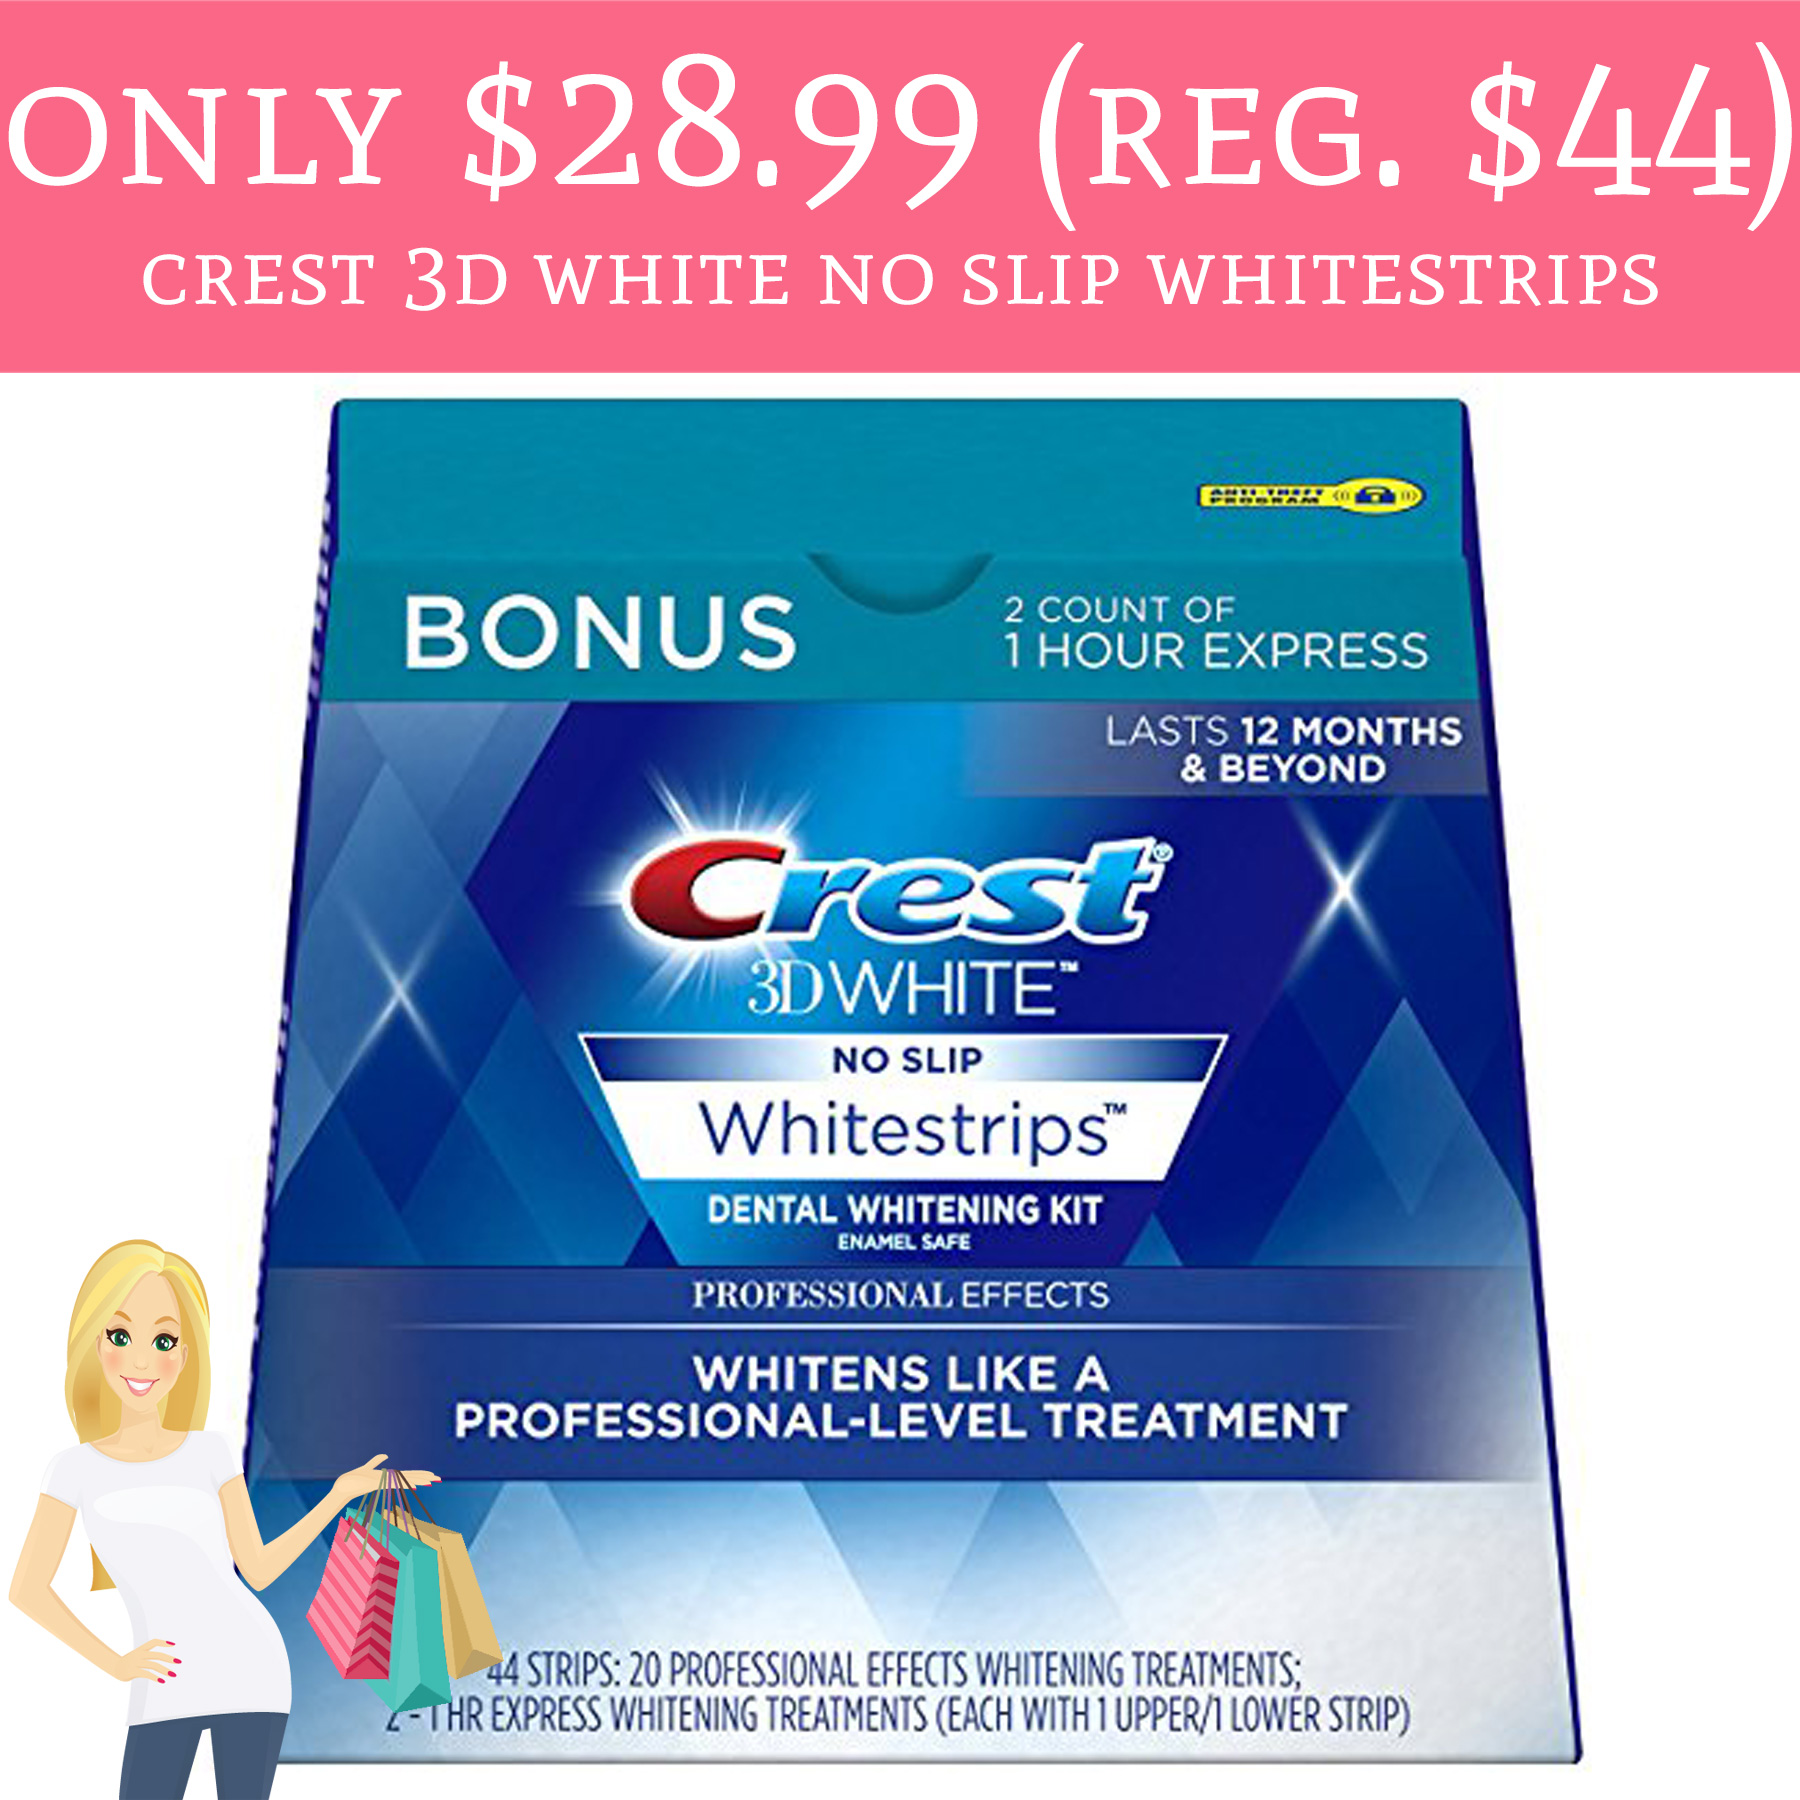 Crest 3d whitestrips coupons 2018